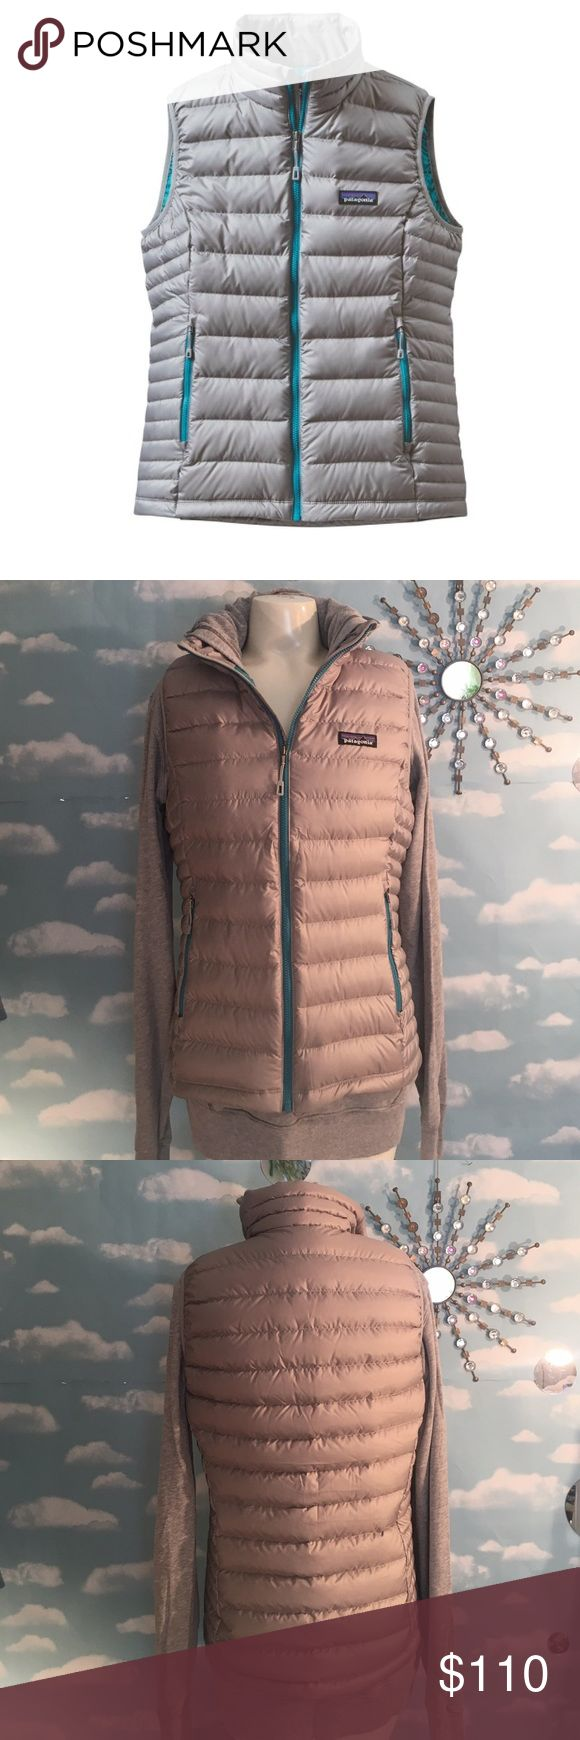 Patagonia Down Sweater Vest New w Tags attached, color is drifter grey, size medium. Pics 1 & 3 depict color most accurately. 🚫I do not Trade, Posh rules only , Reasonable offers welcome! Thank you! Patagonia Jackets & Coats Vests